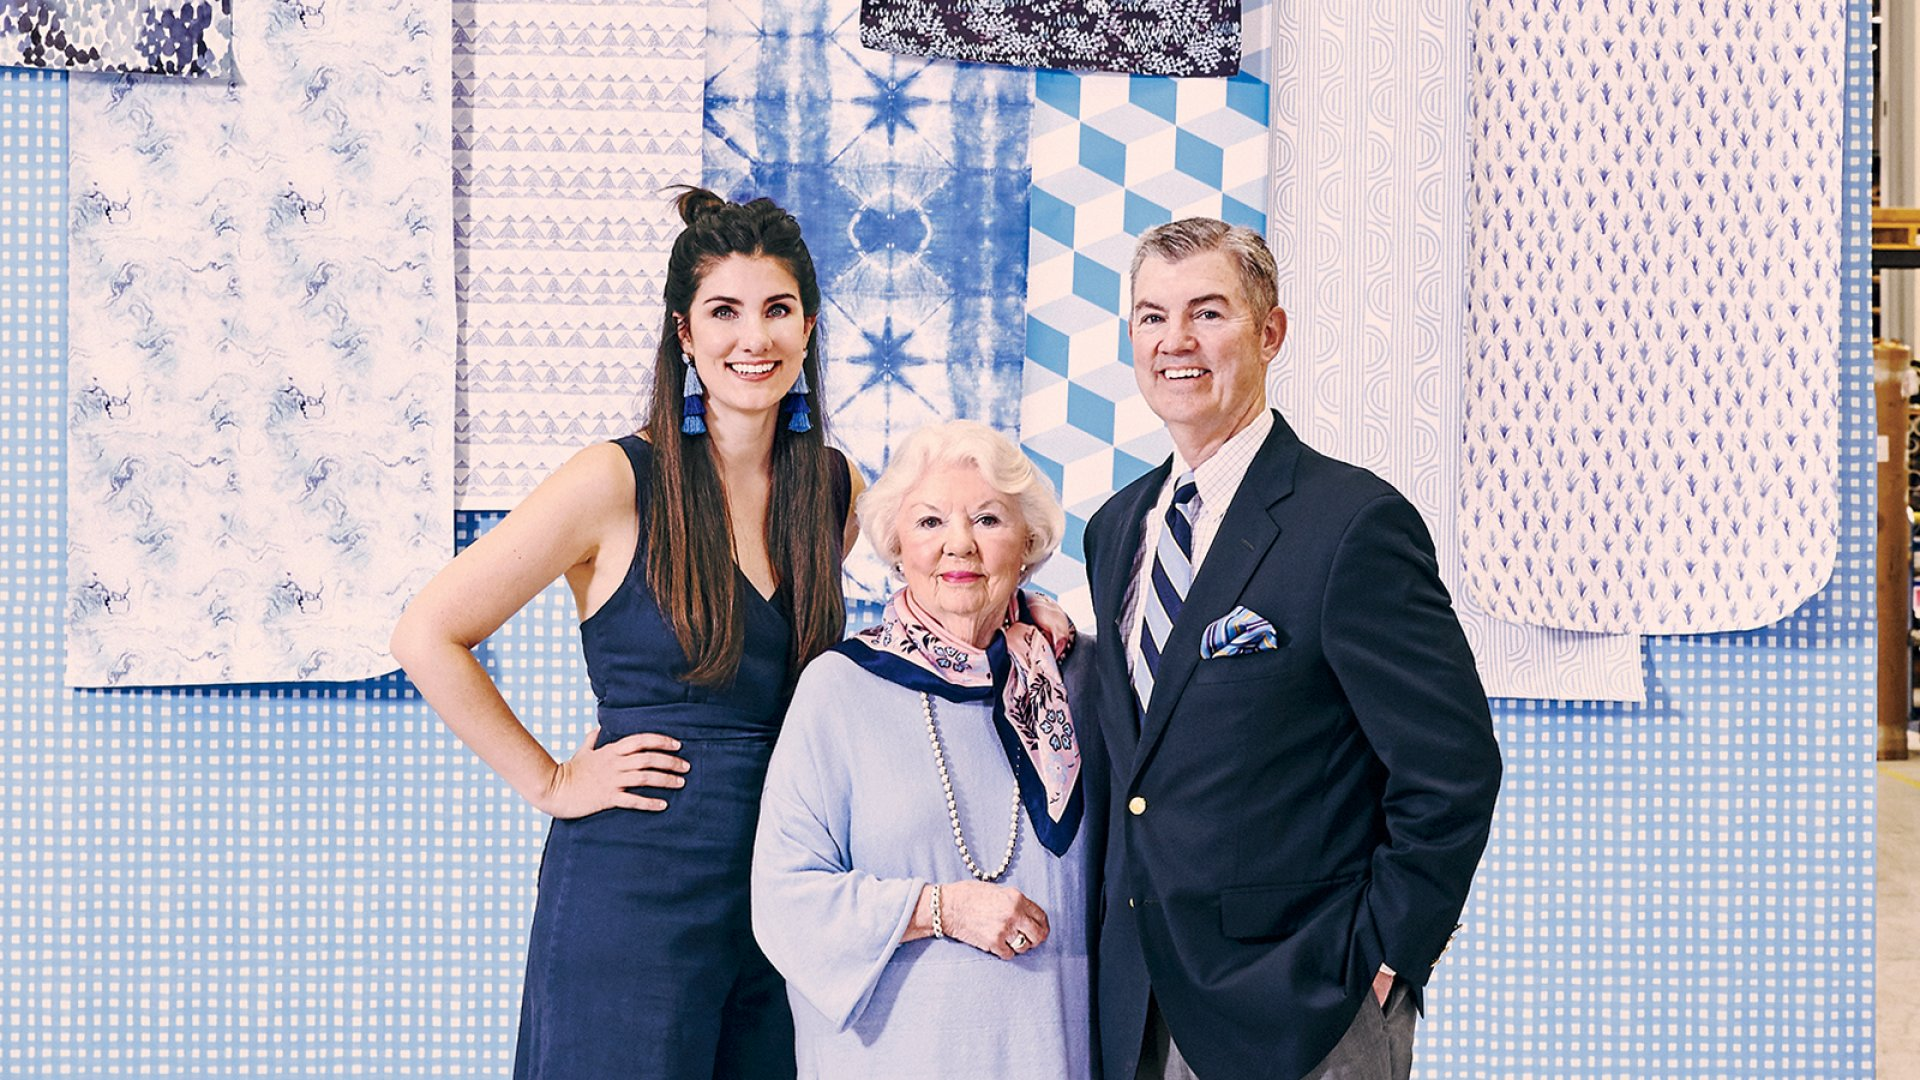 (From left) Elizabeth Rees, Margaret Rees, and Mike Rees. Milwaukee-based Kubin-Nicholson now manufactures 120 modular wallpaper designs.